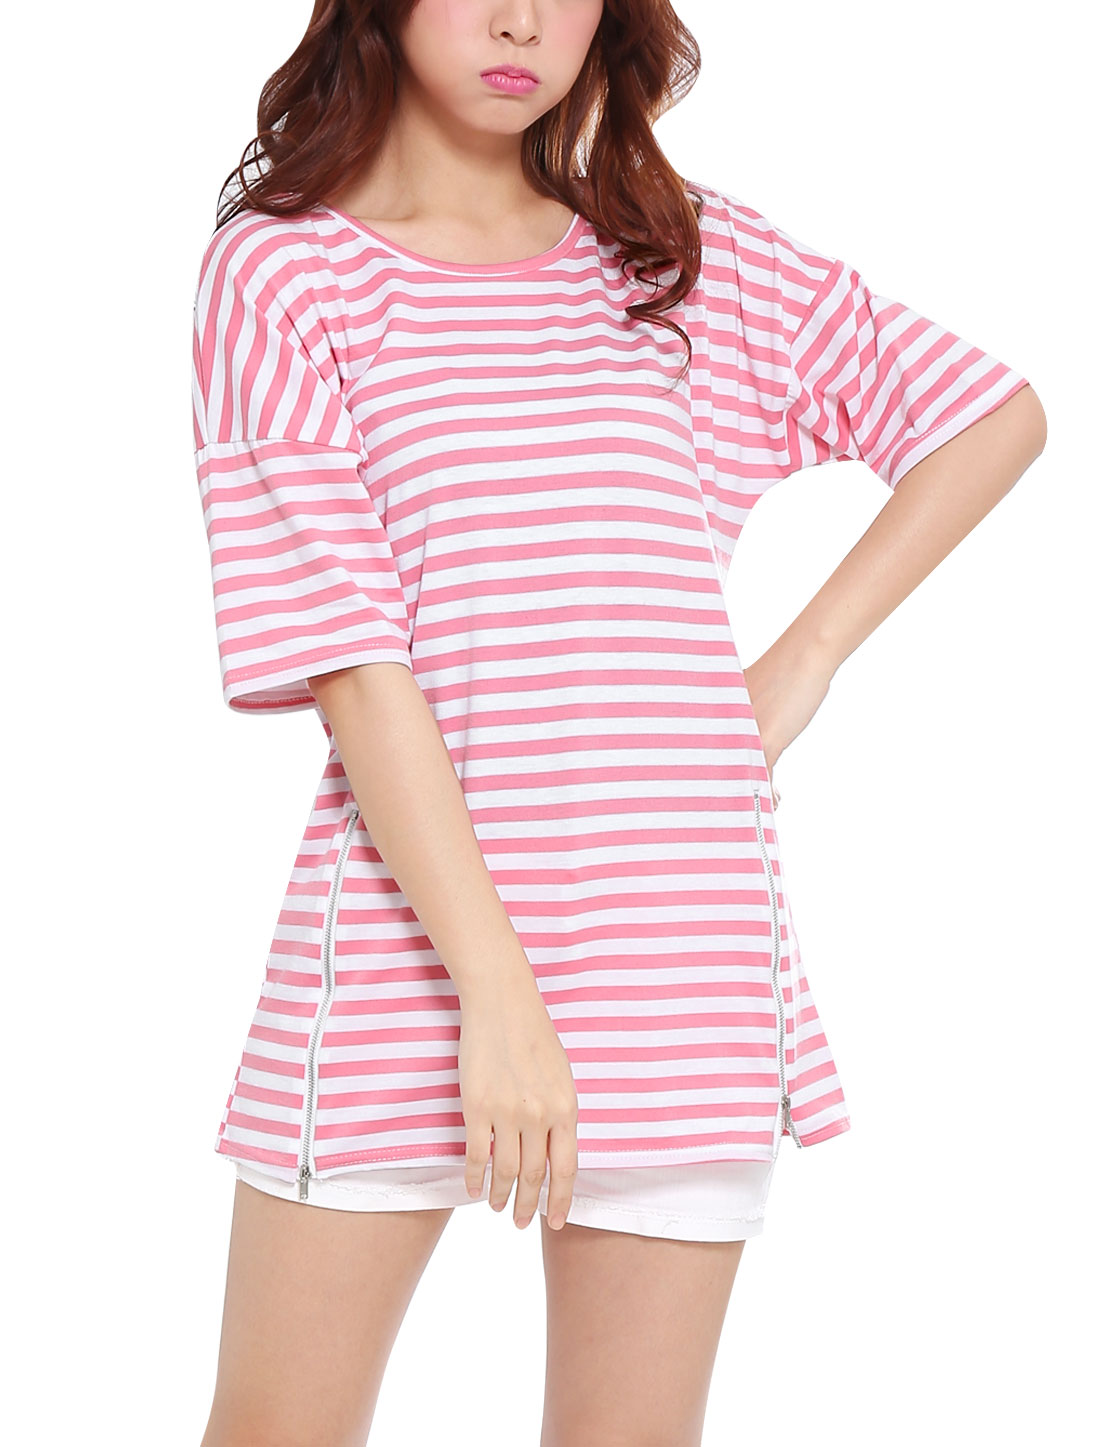 Lady Round Neck Short Batwing Sleeve Stripes Tunic Top Pink XS